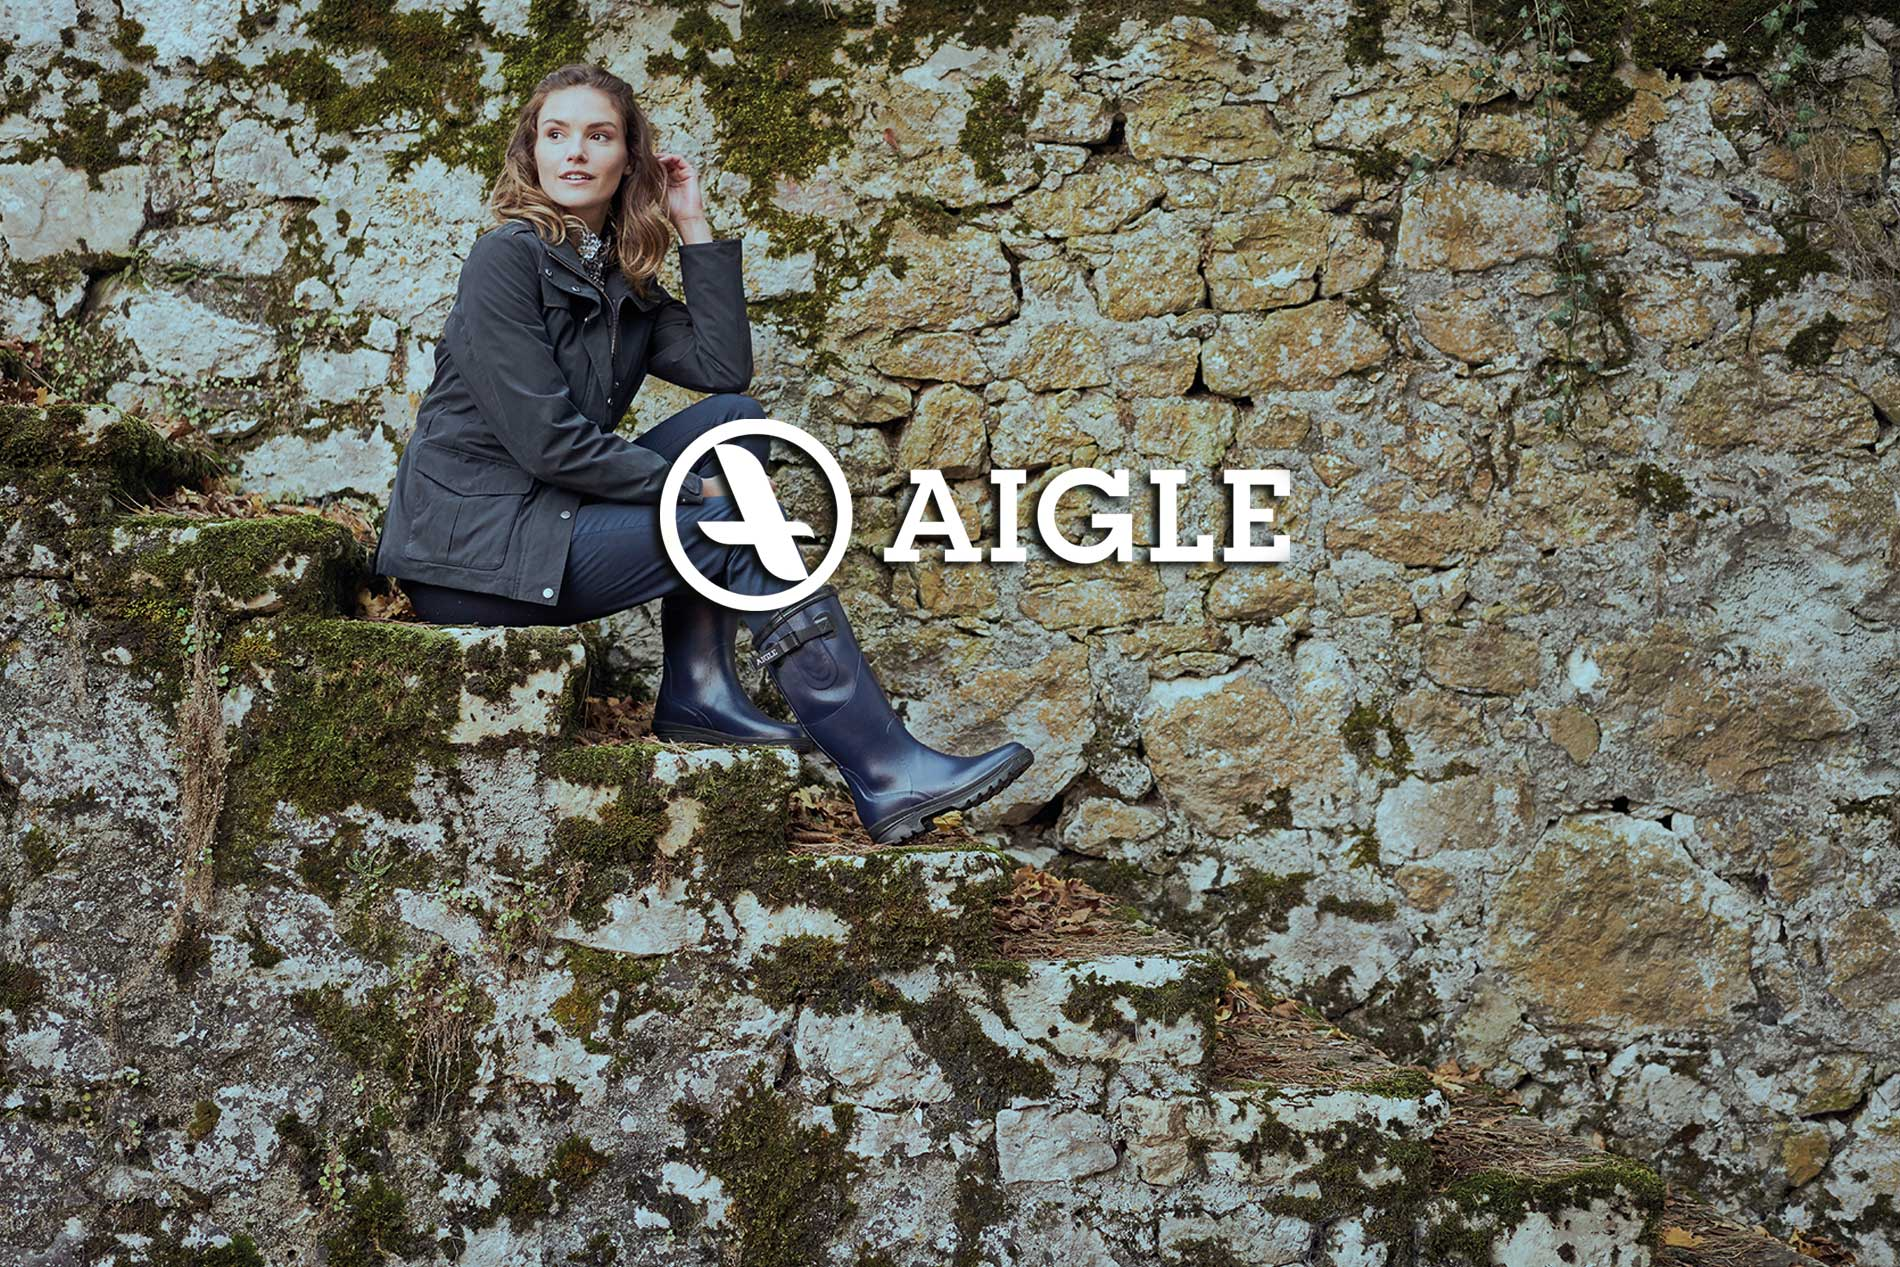 New to Balnecroft Country the aigle boot